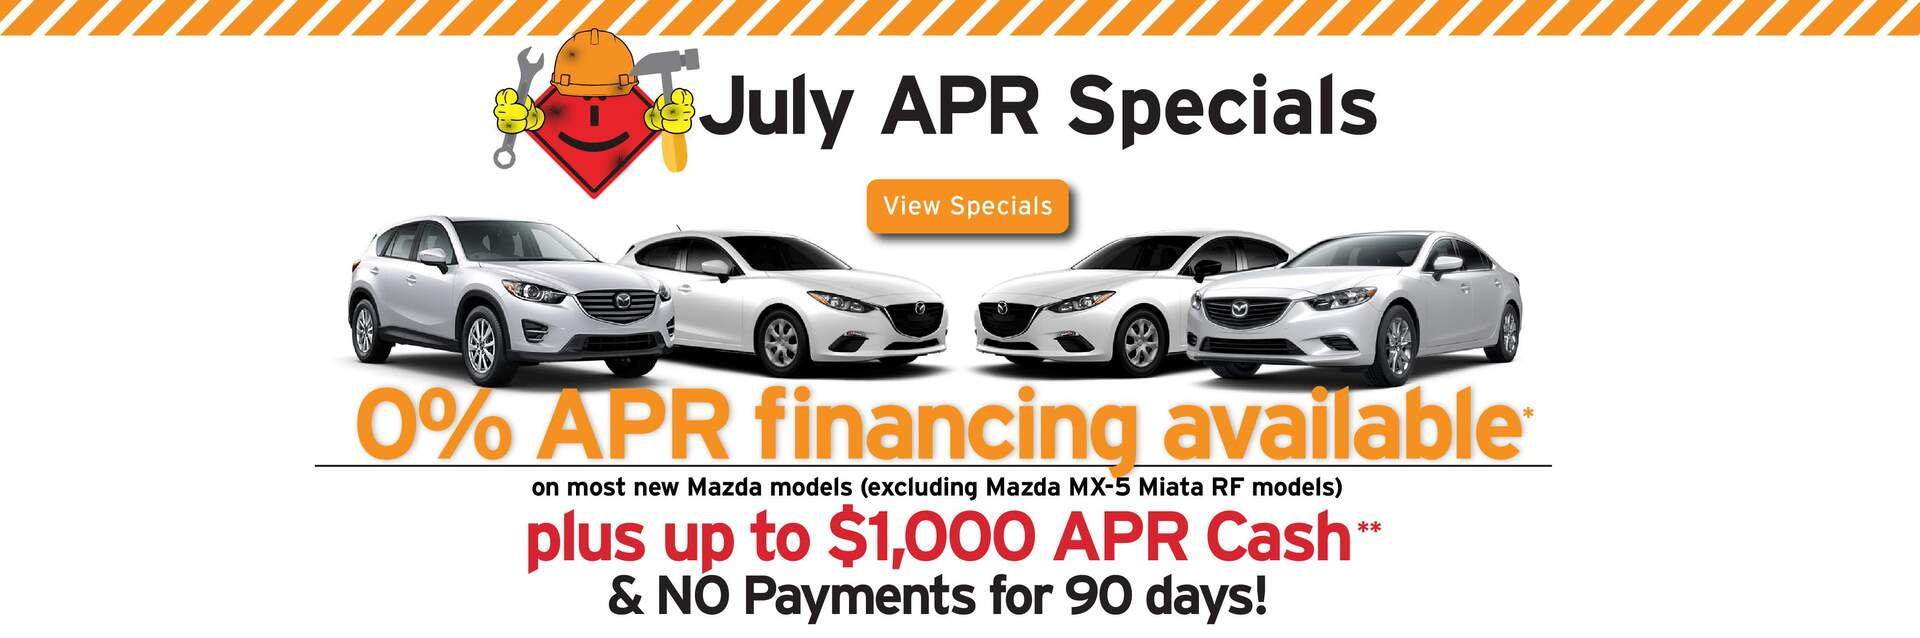 Capistrano Mazda APR offers - 0% APR upto 60 months + $1,000 Bonus Cash